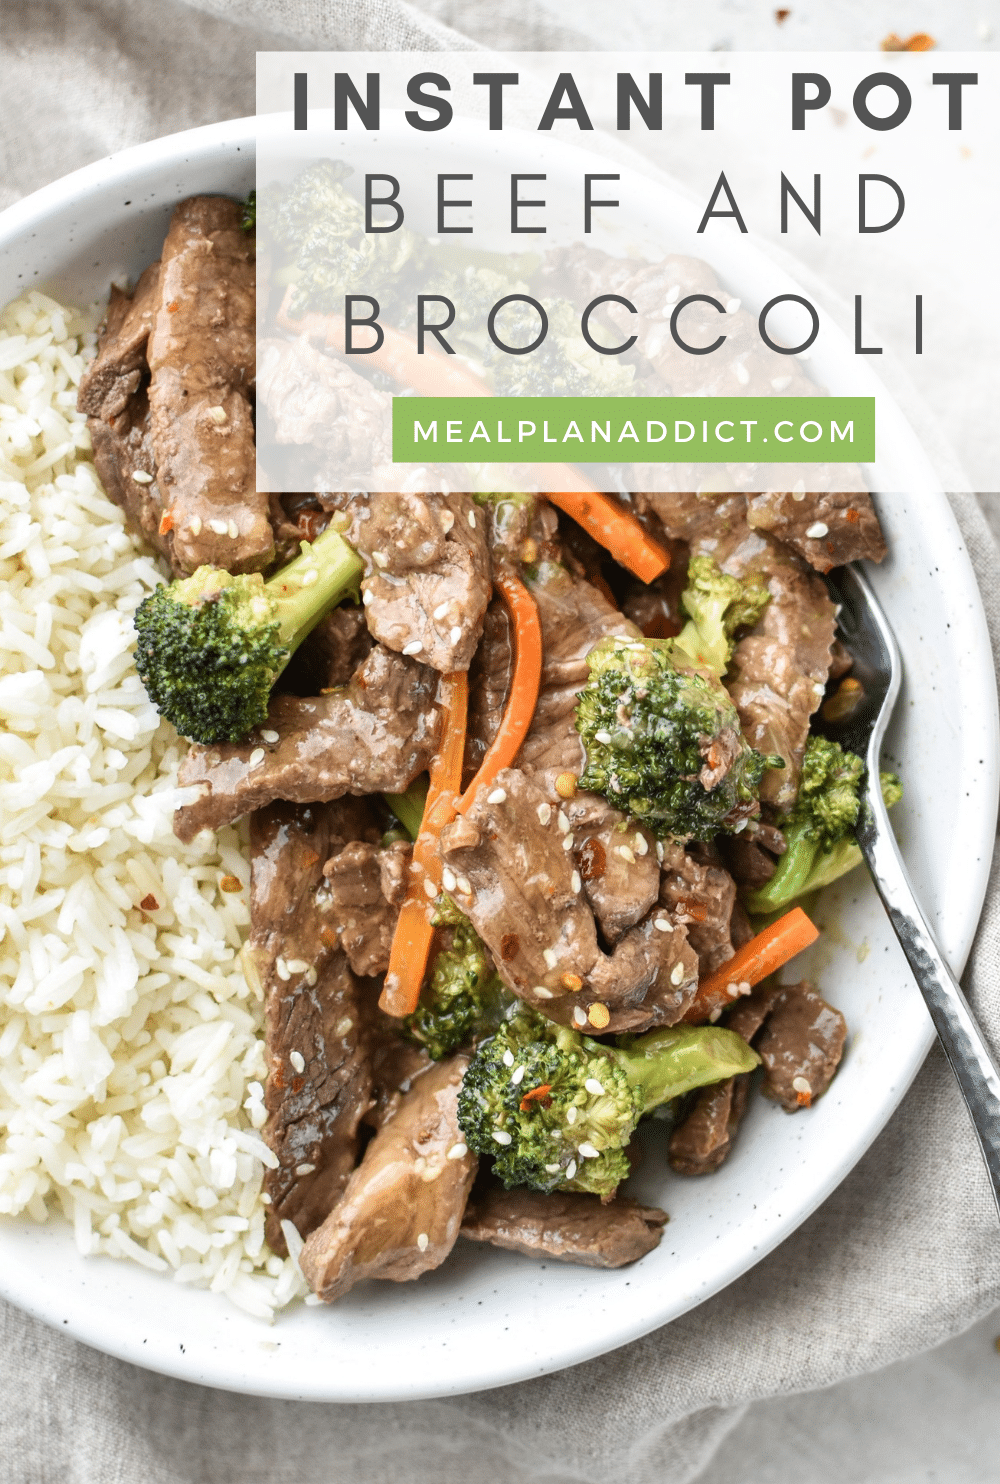 Beef and broccoli pin for Pinterest